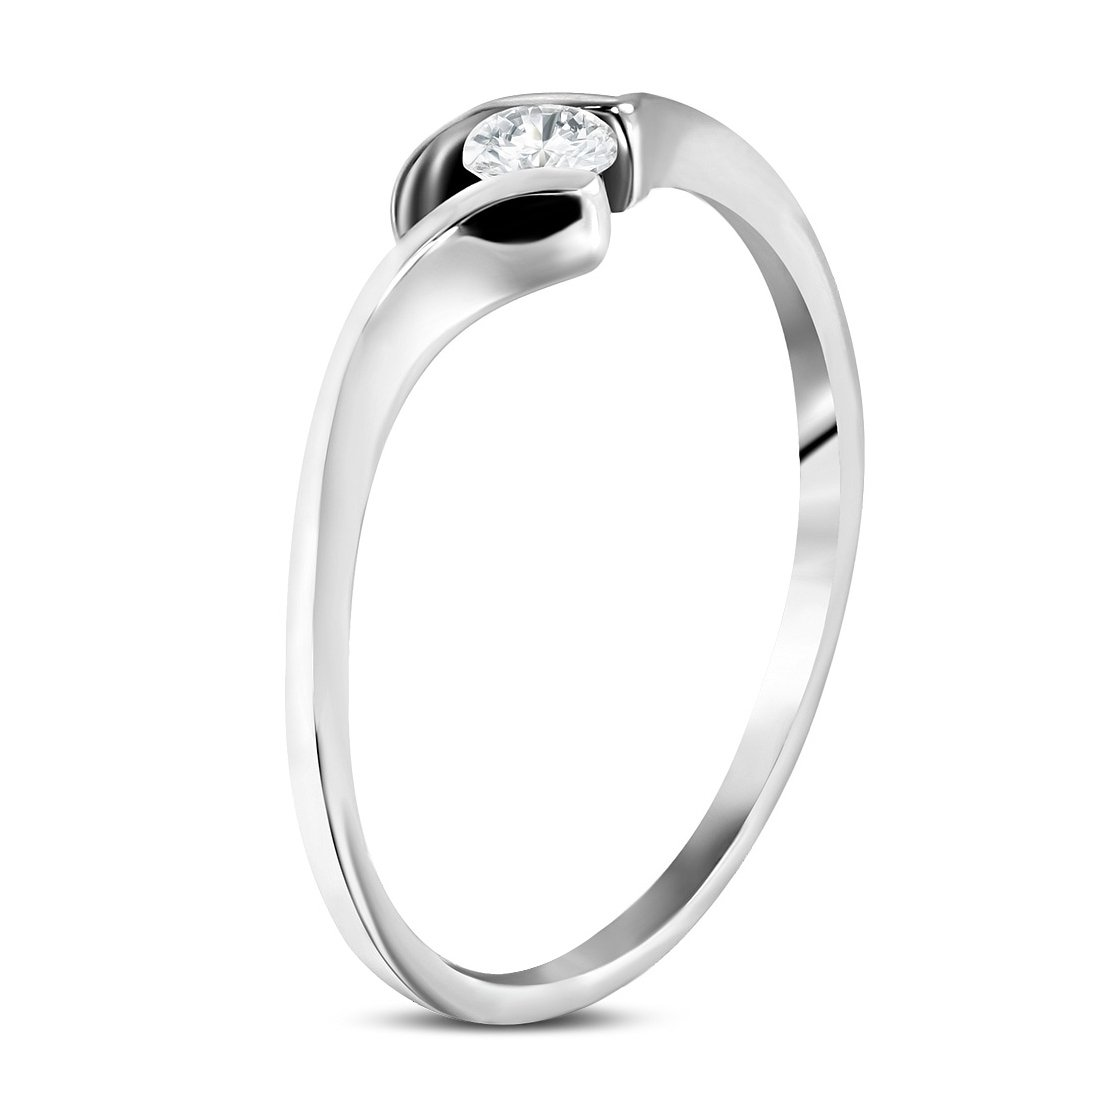 Stainless Steel Tension-Set Love Heart Bypass Ring with Clear CZ